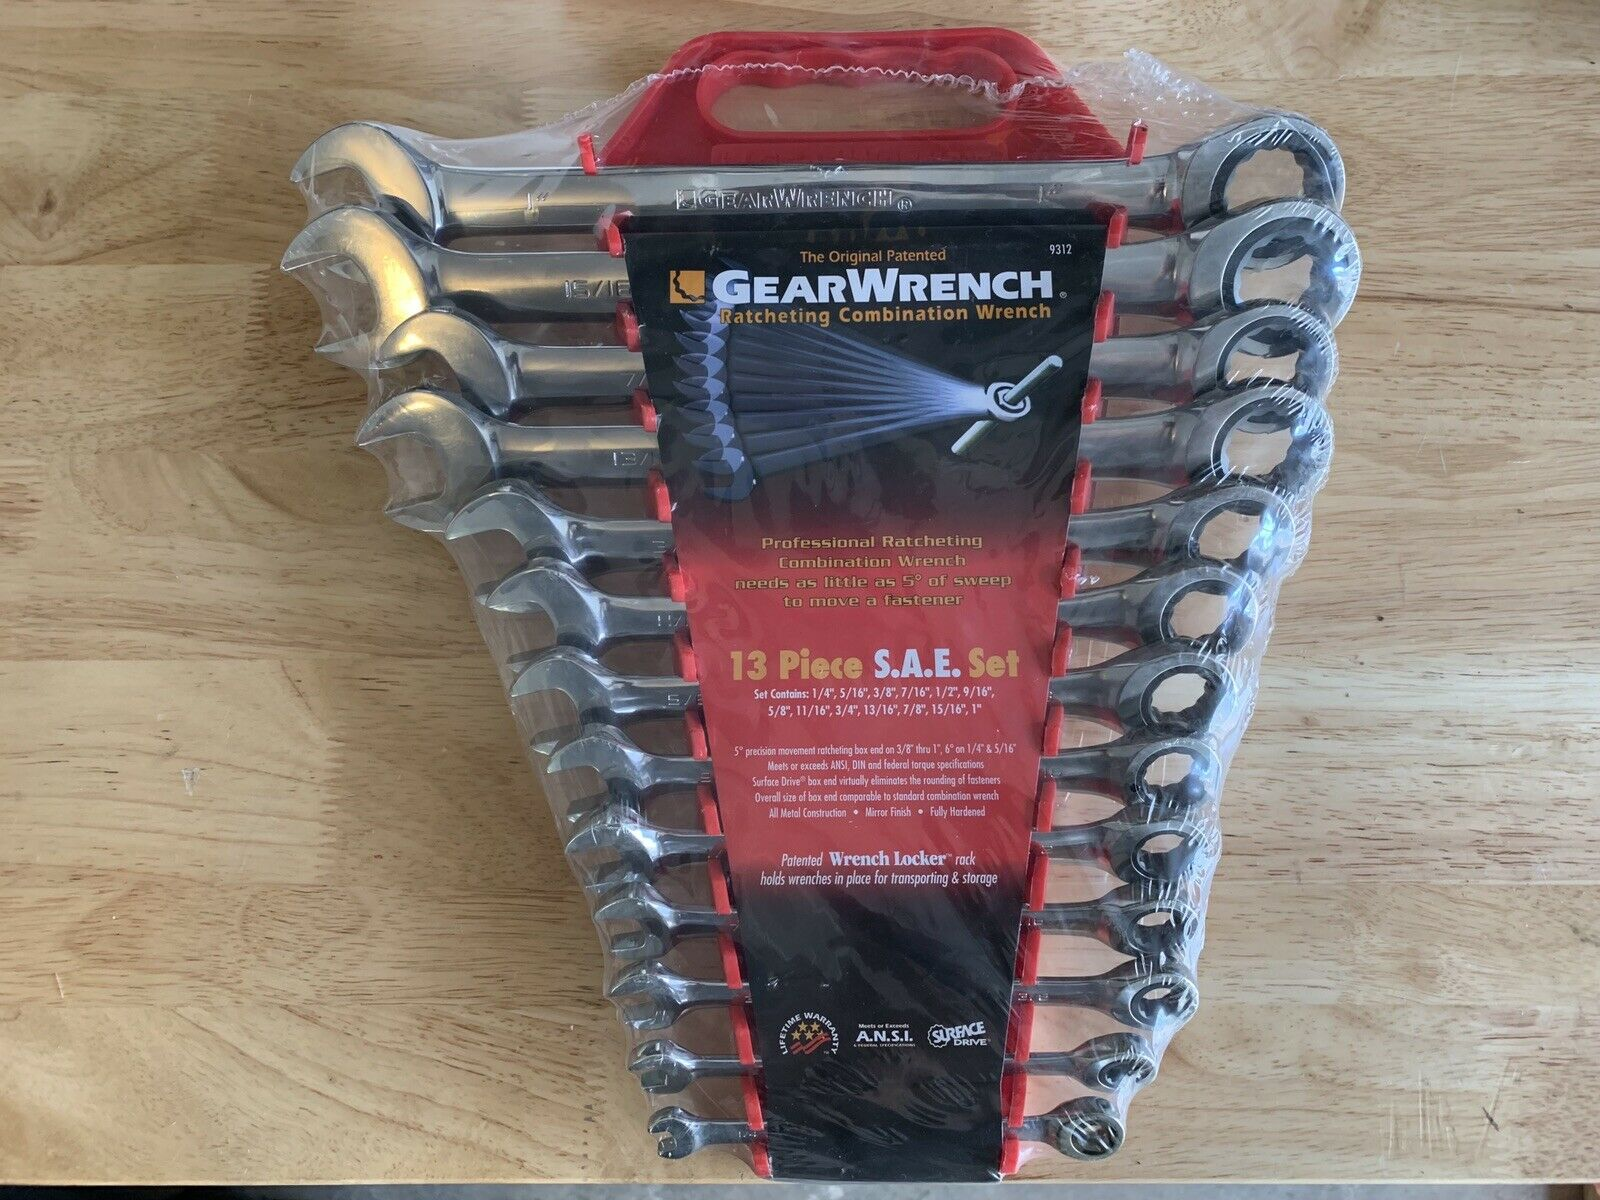 Gearwrench 13 Piece SAE Set